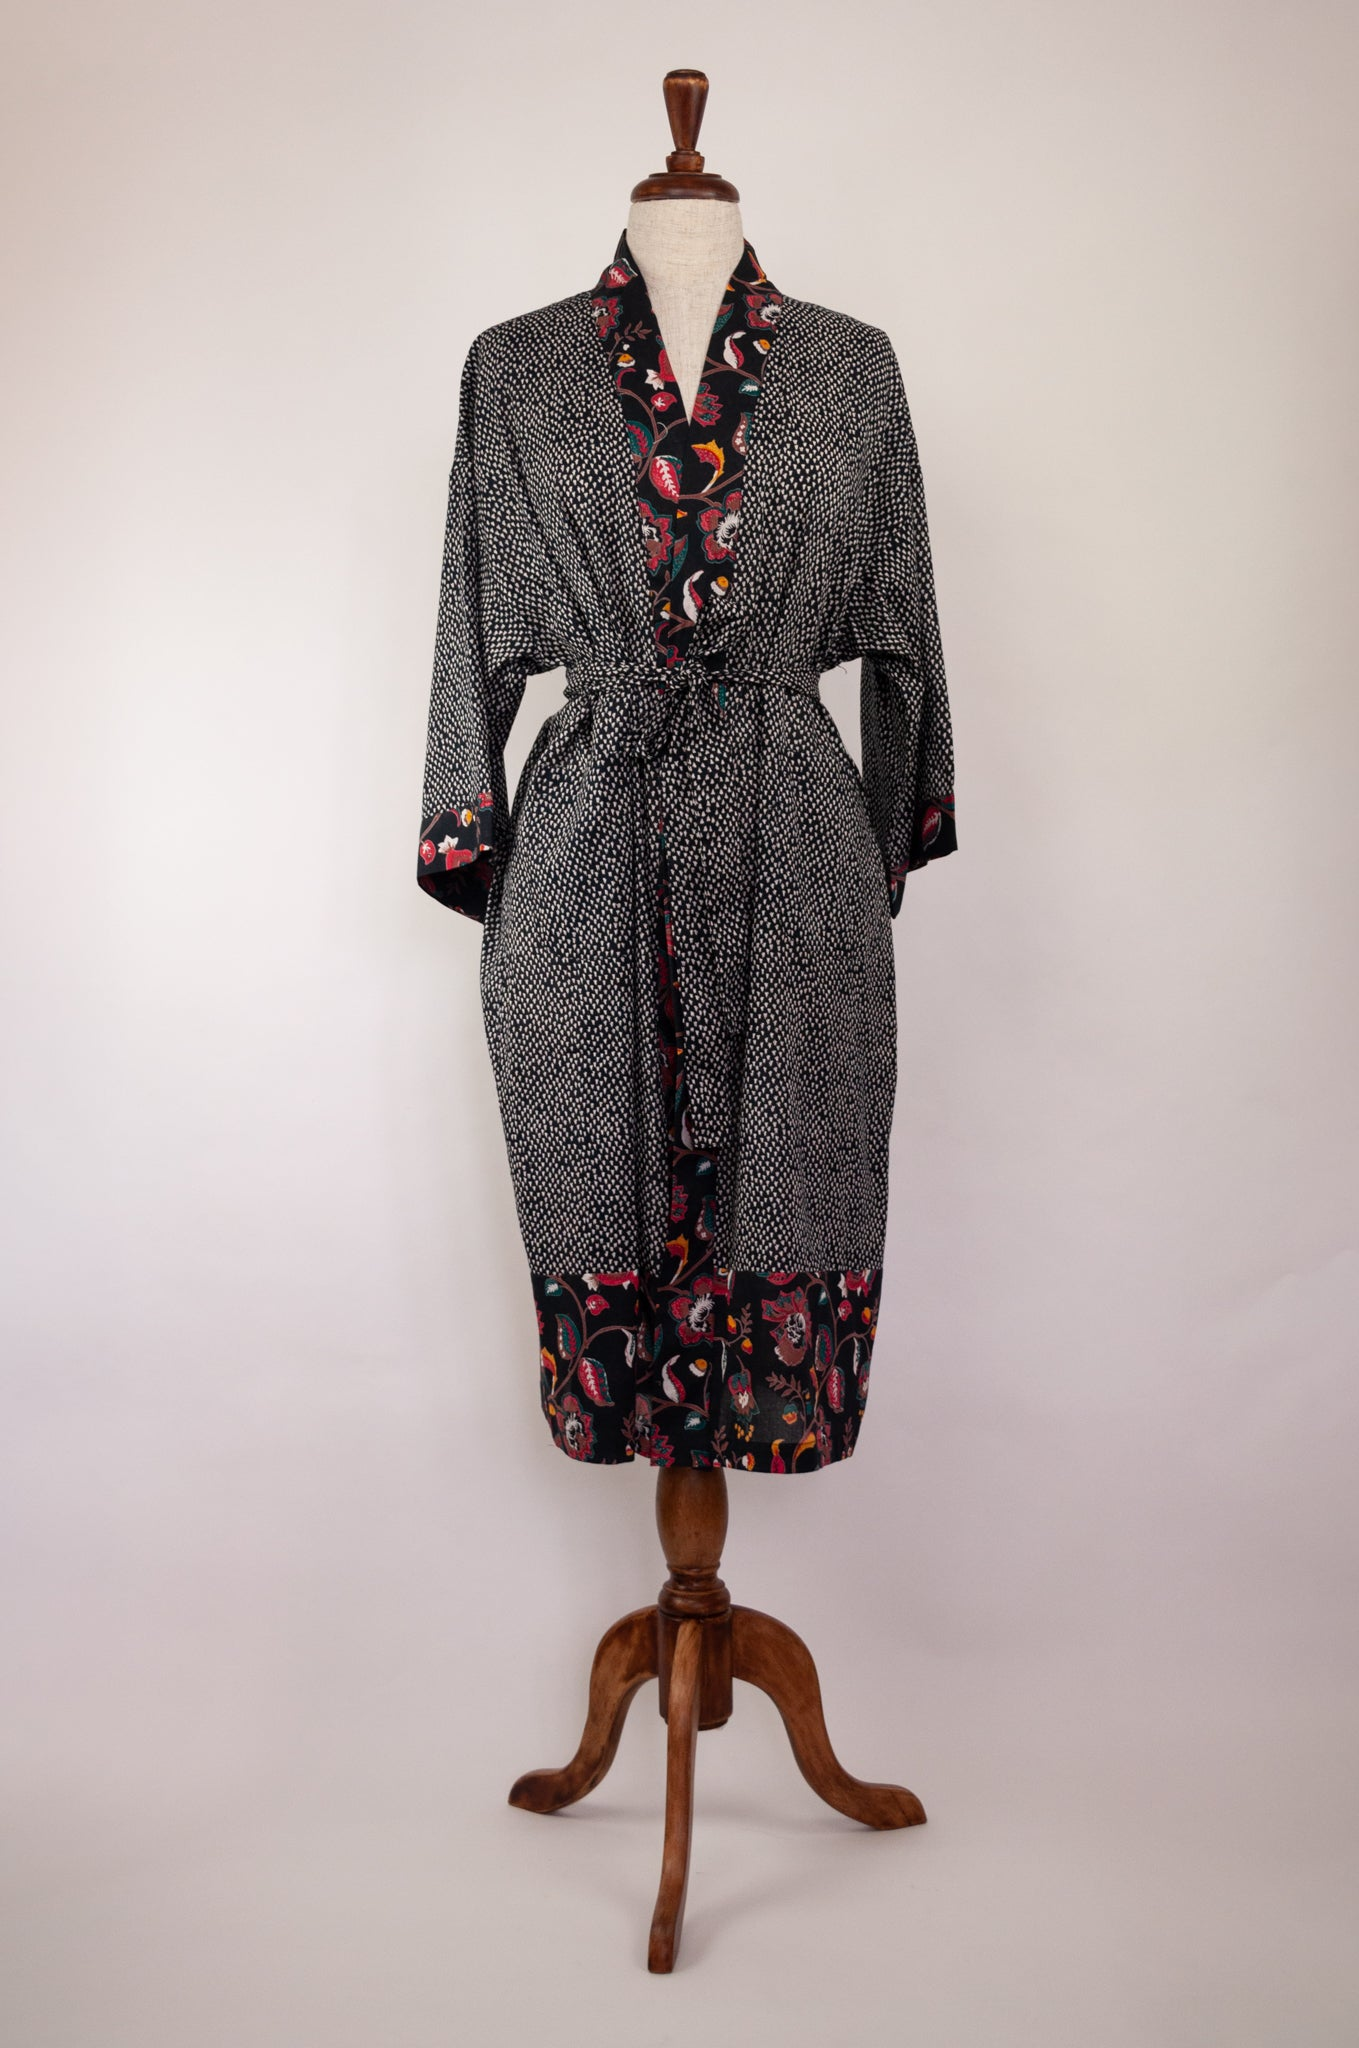 Cotton voile kimono robe dressing gown in simple white on black print, with contrast floral trim.